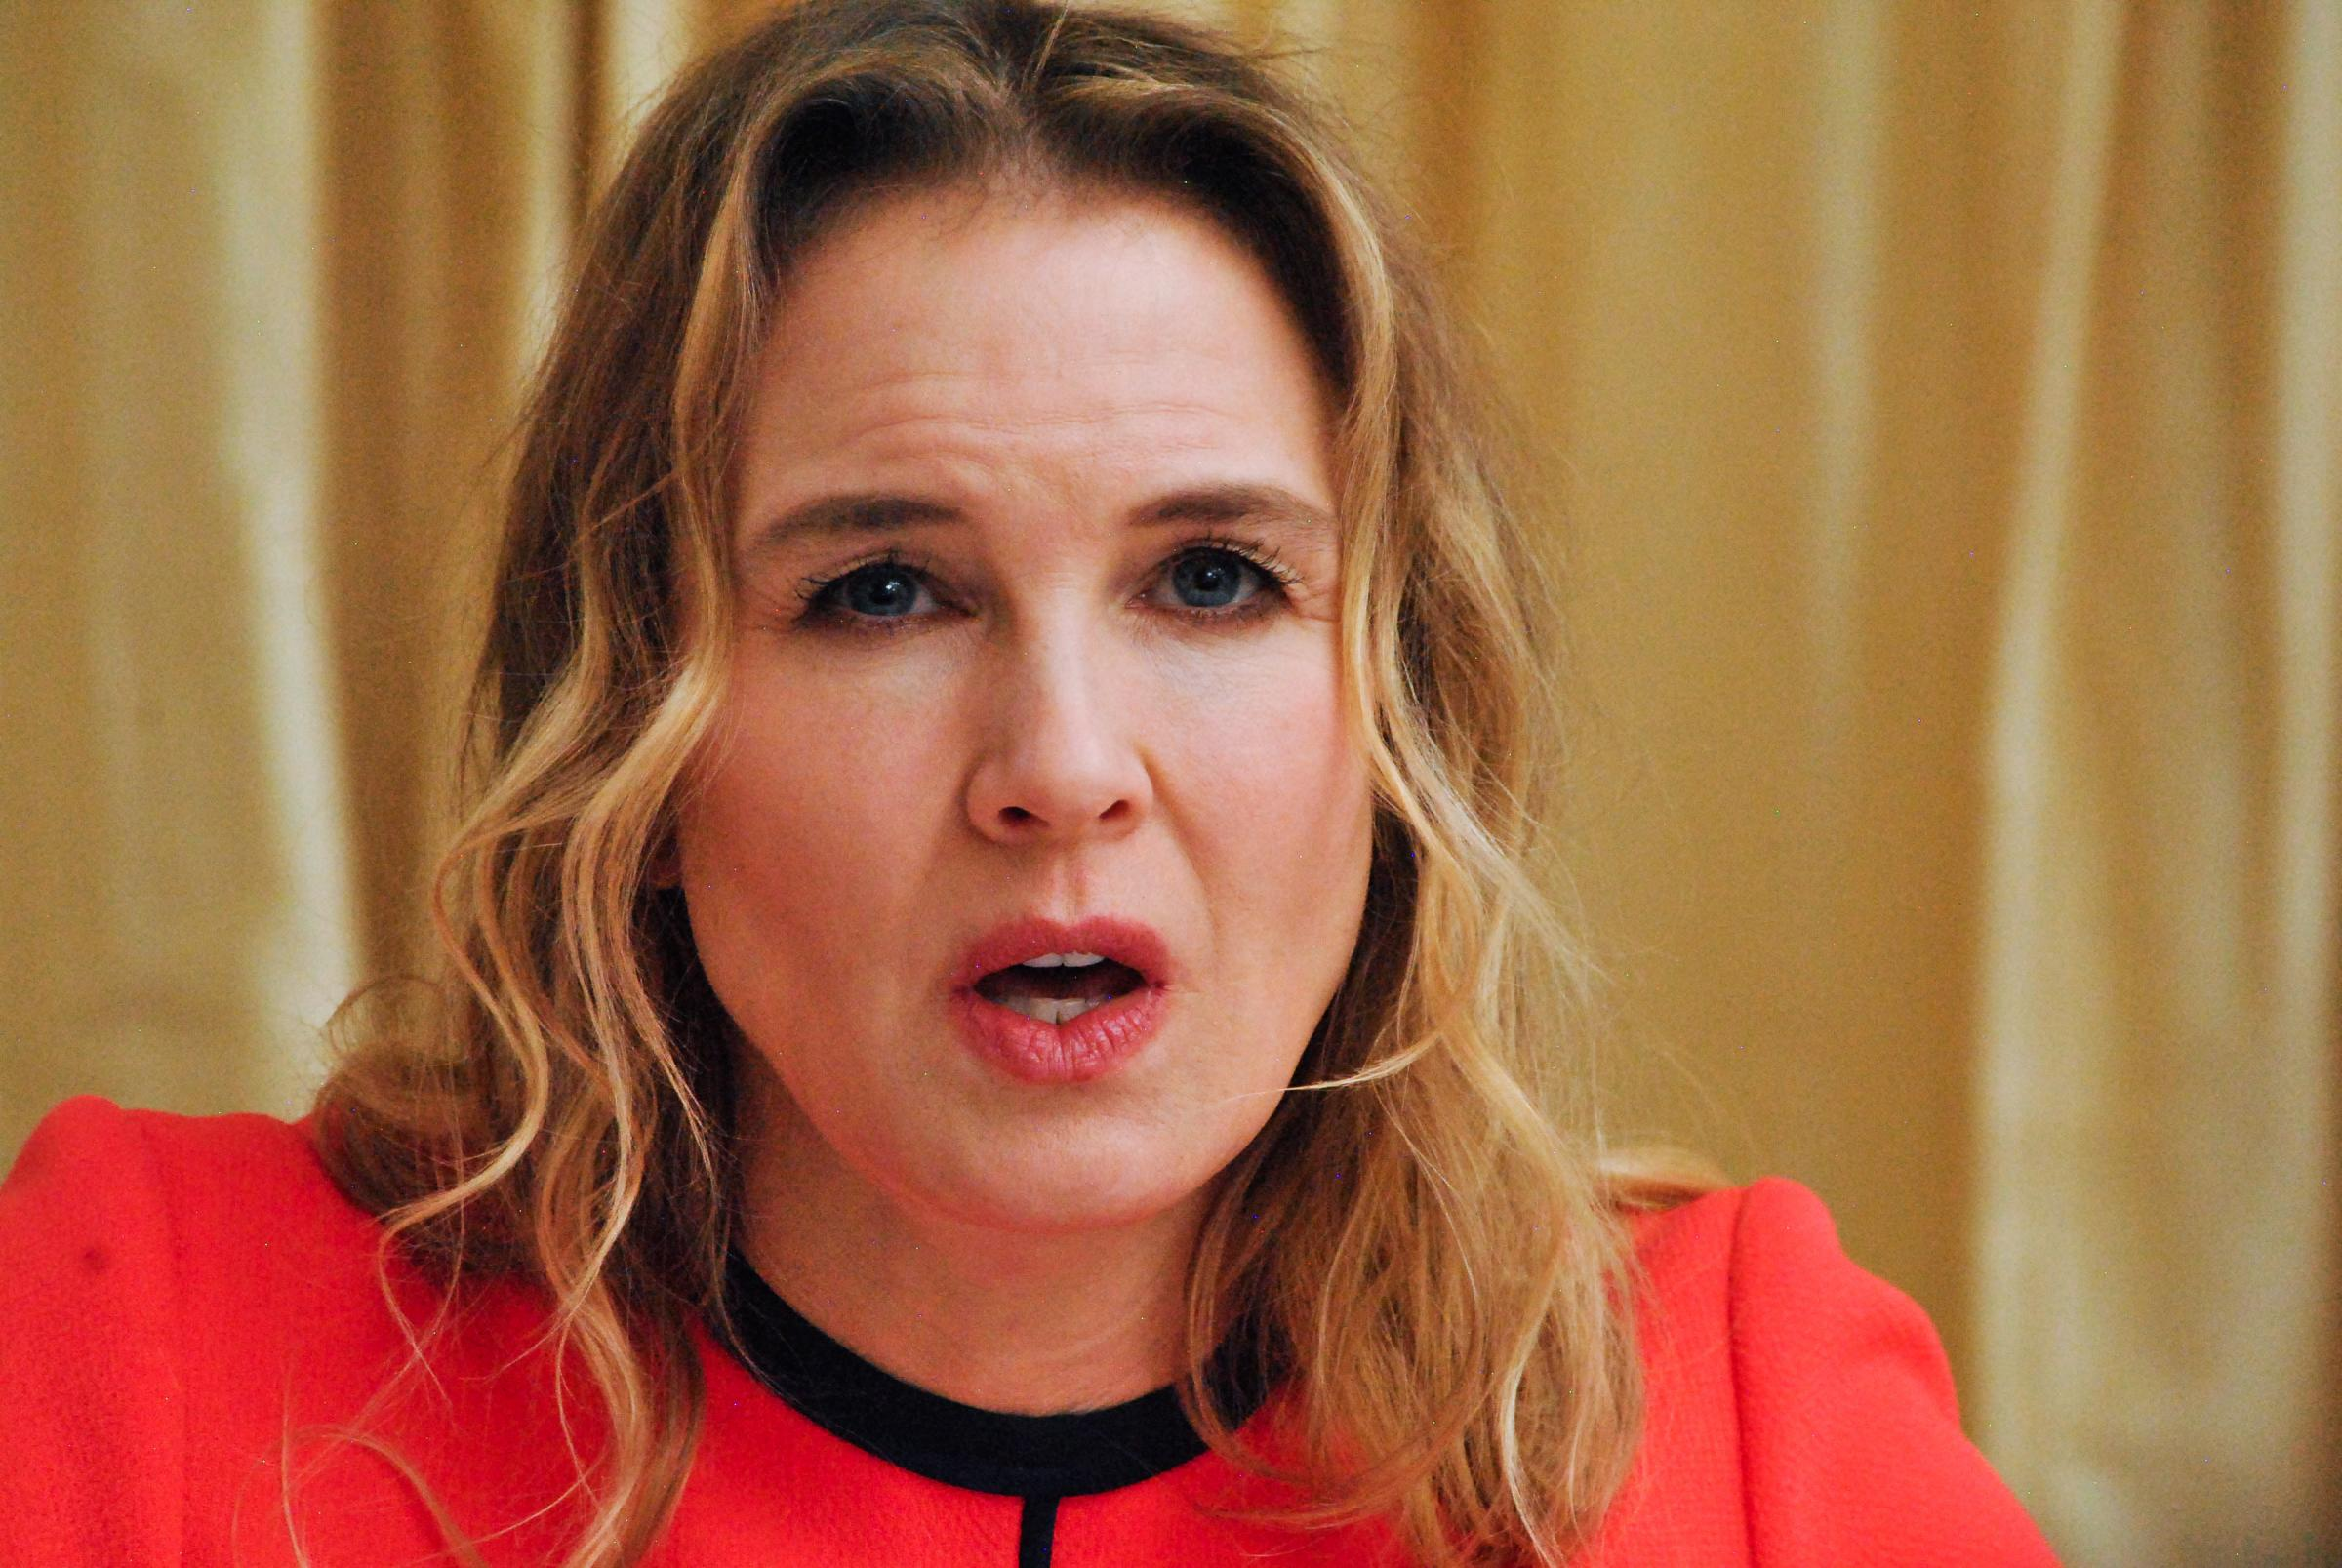 Renee Zellweger ritratti in conferenza stampa